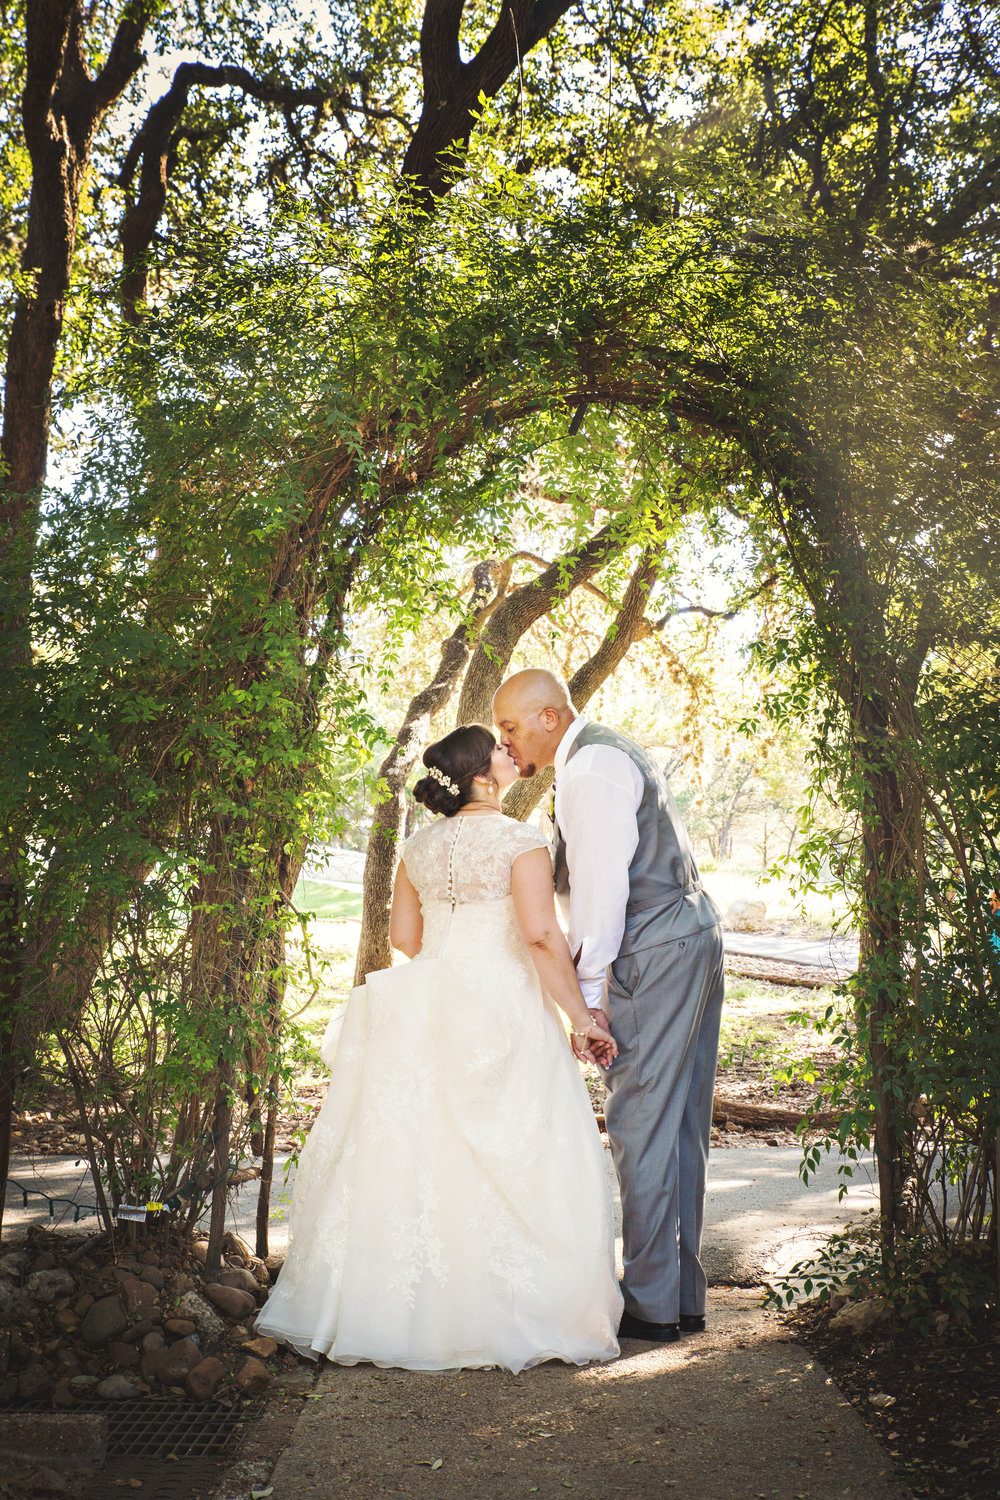 SCENIC SPRINGS WEDDING